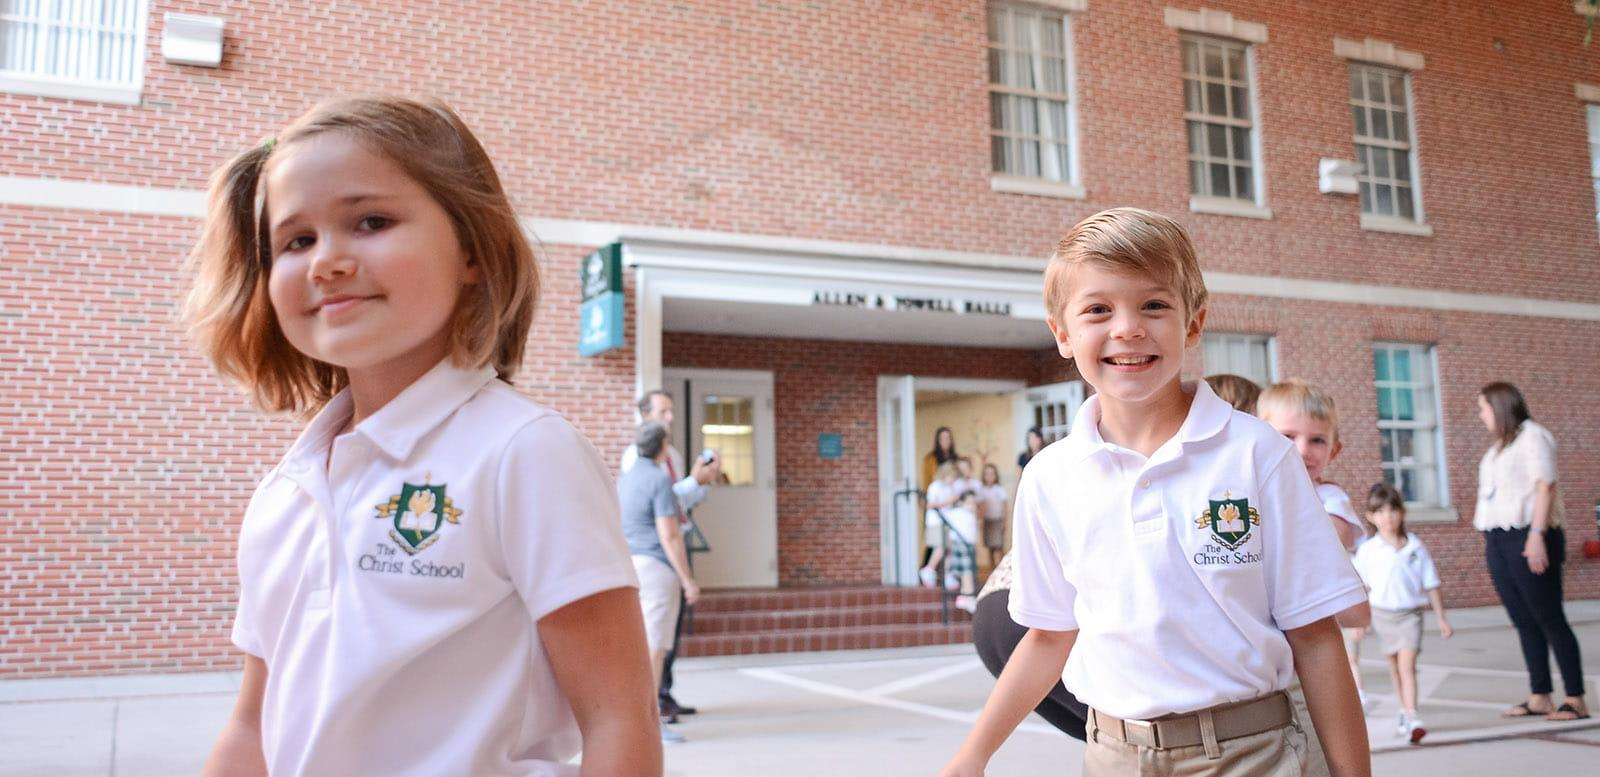 Private School Dress Code | The Christ School